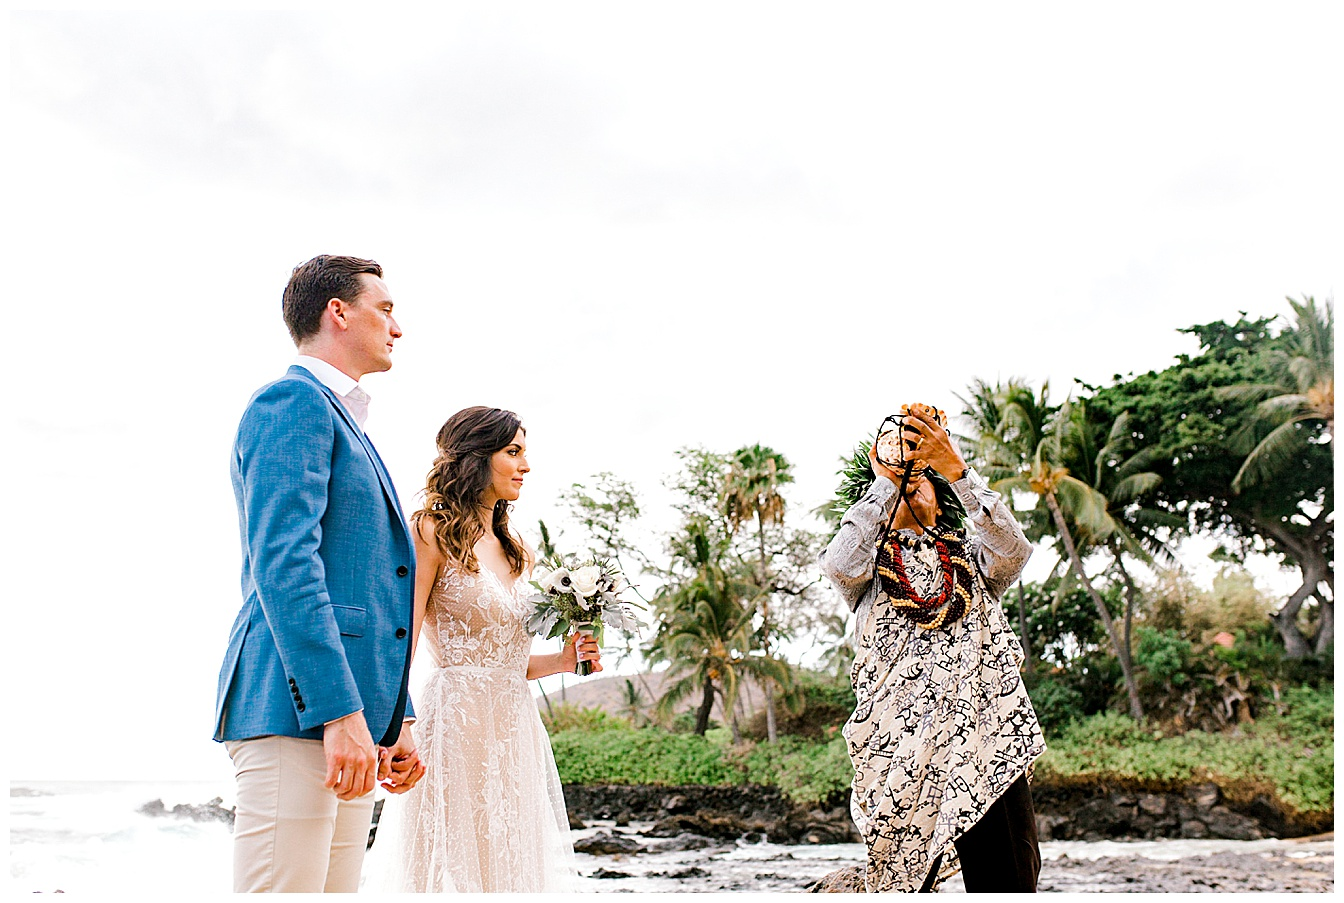 Blowing of the pu, Hawaiian conch shell, at the start of a Maui wedding ceremony